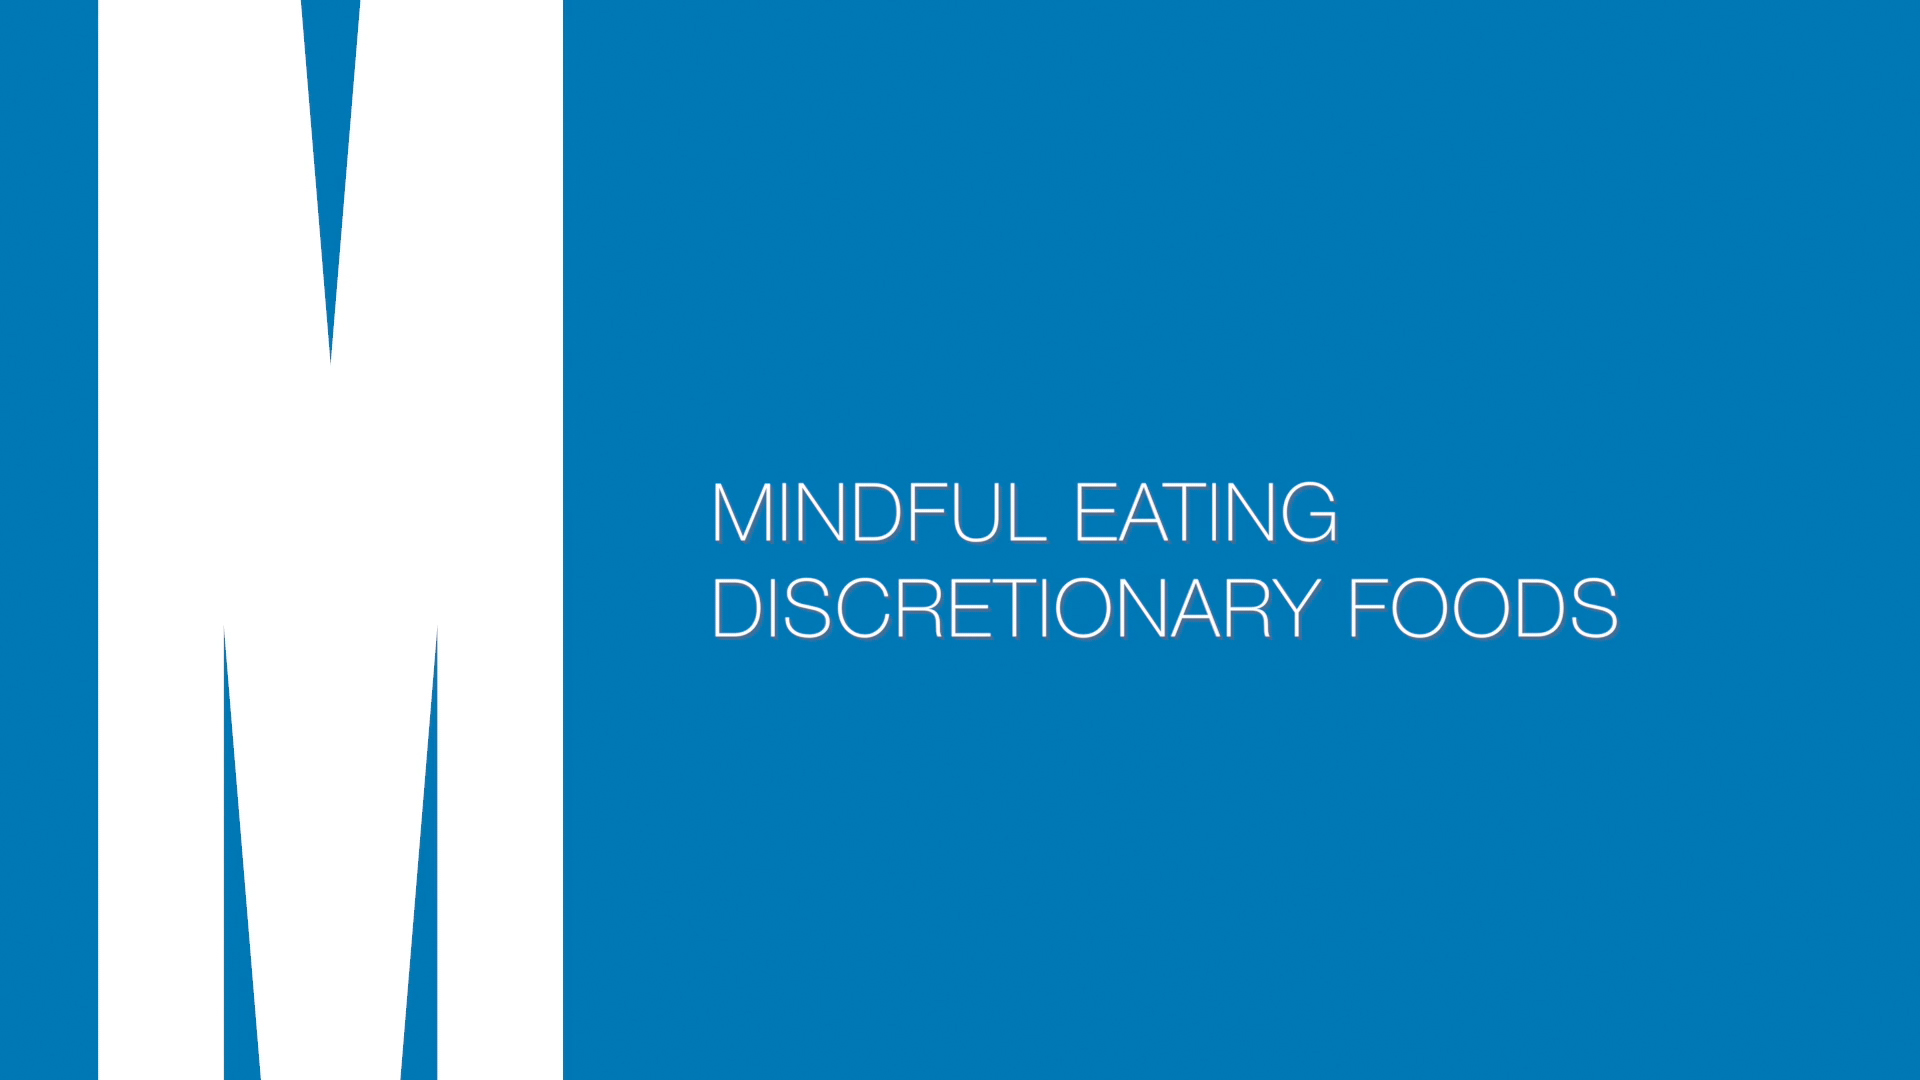 Mindful eating: Discretionary foods